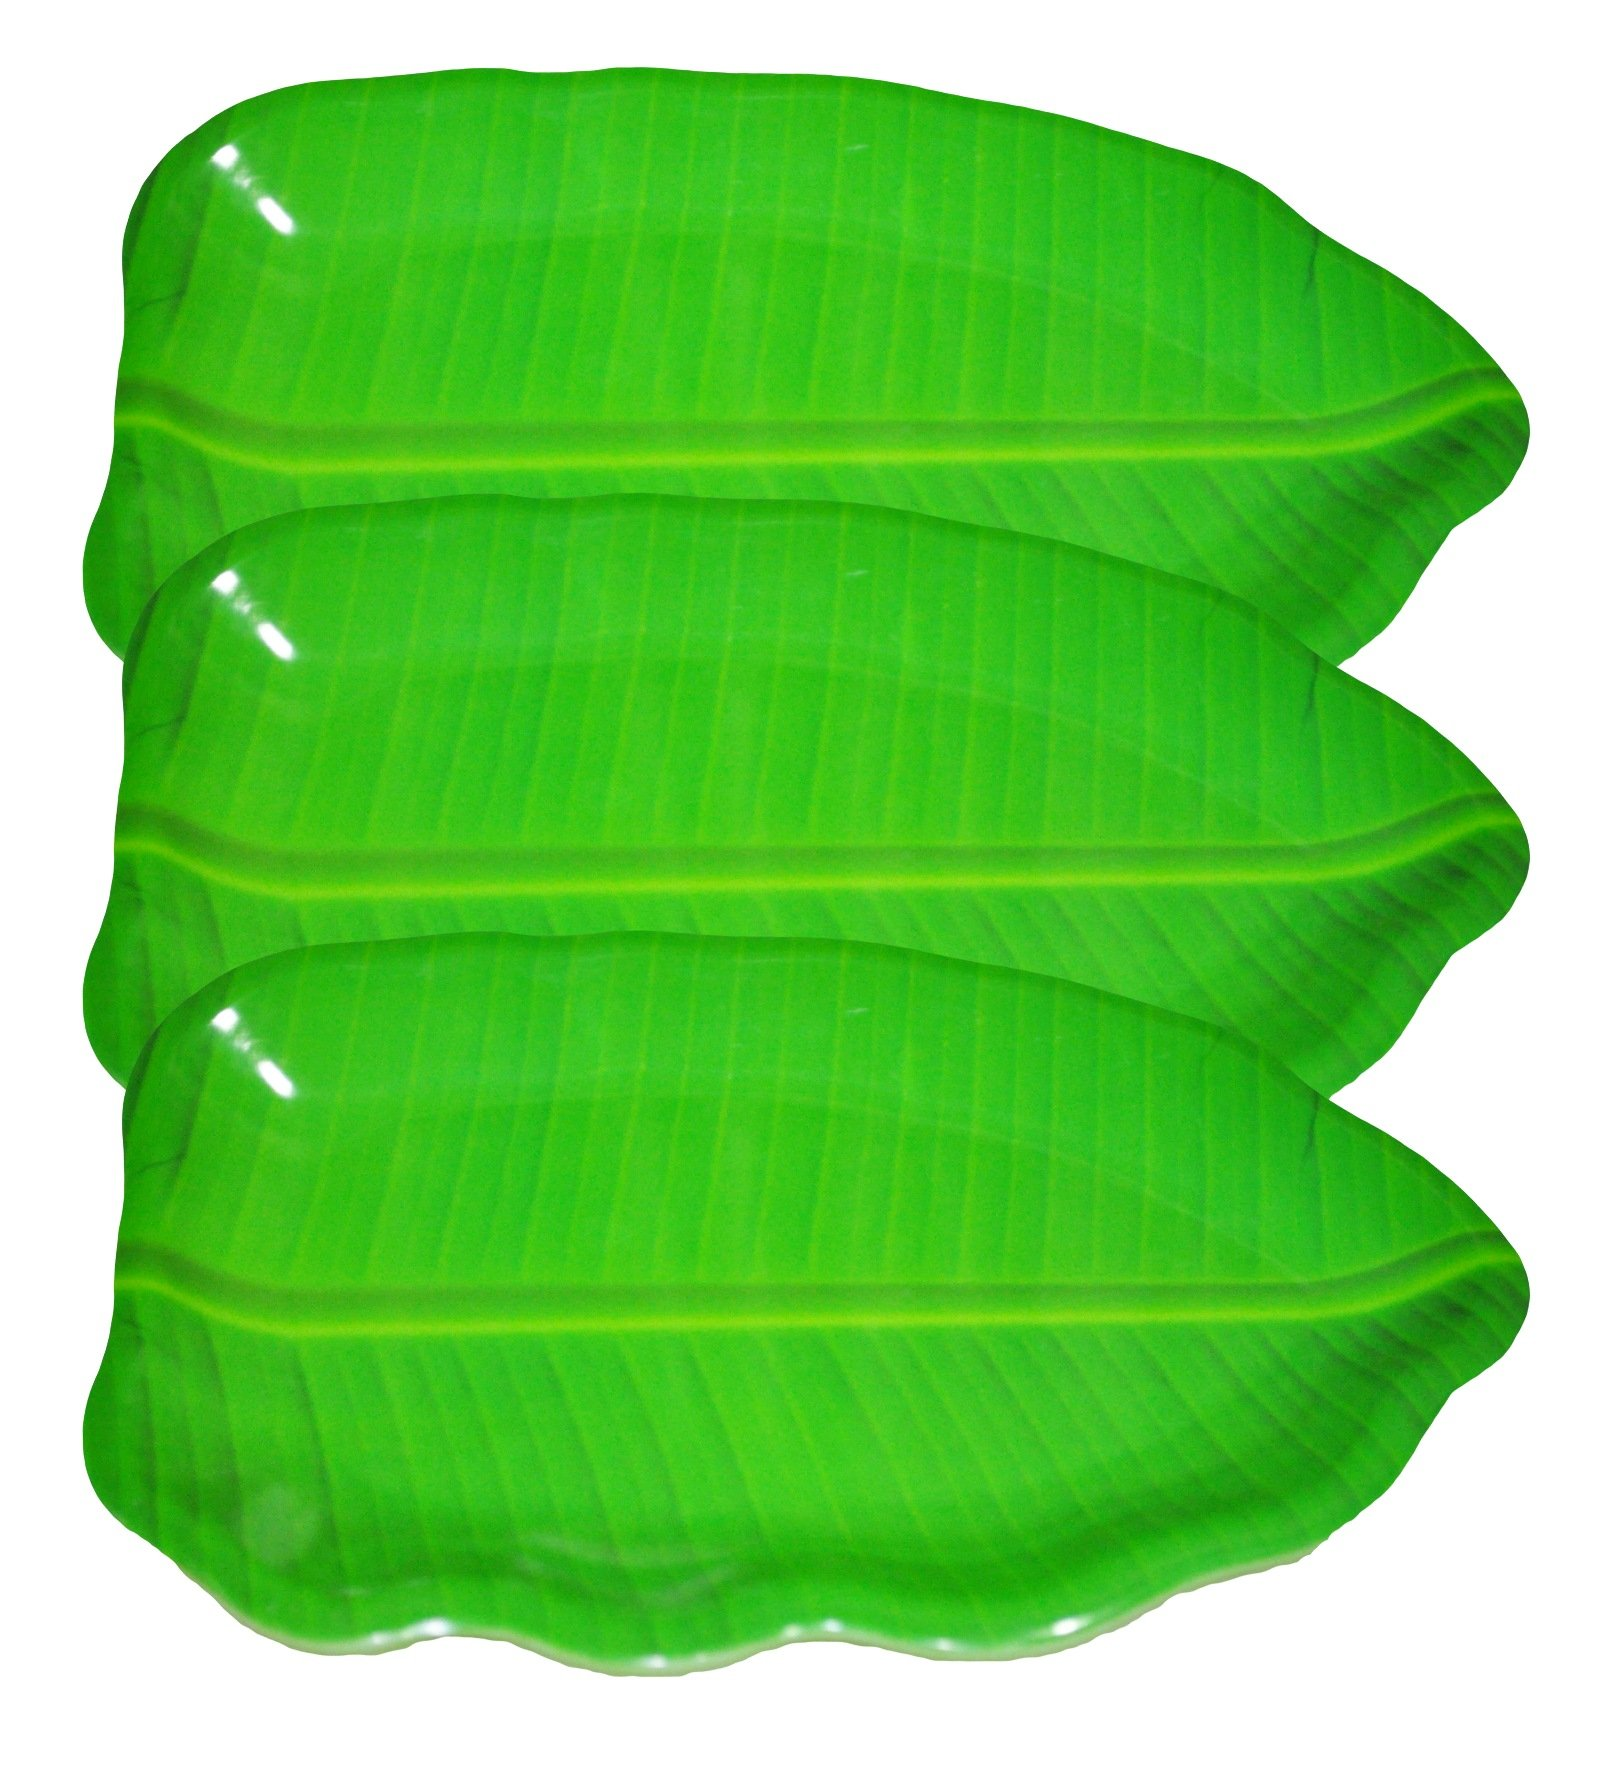 Hua You 14 inch Banana Leaf Shape South Indian Dinner Lunch Serving Melamine Platter Plate for All Occasions - 3 Pcs